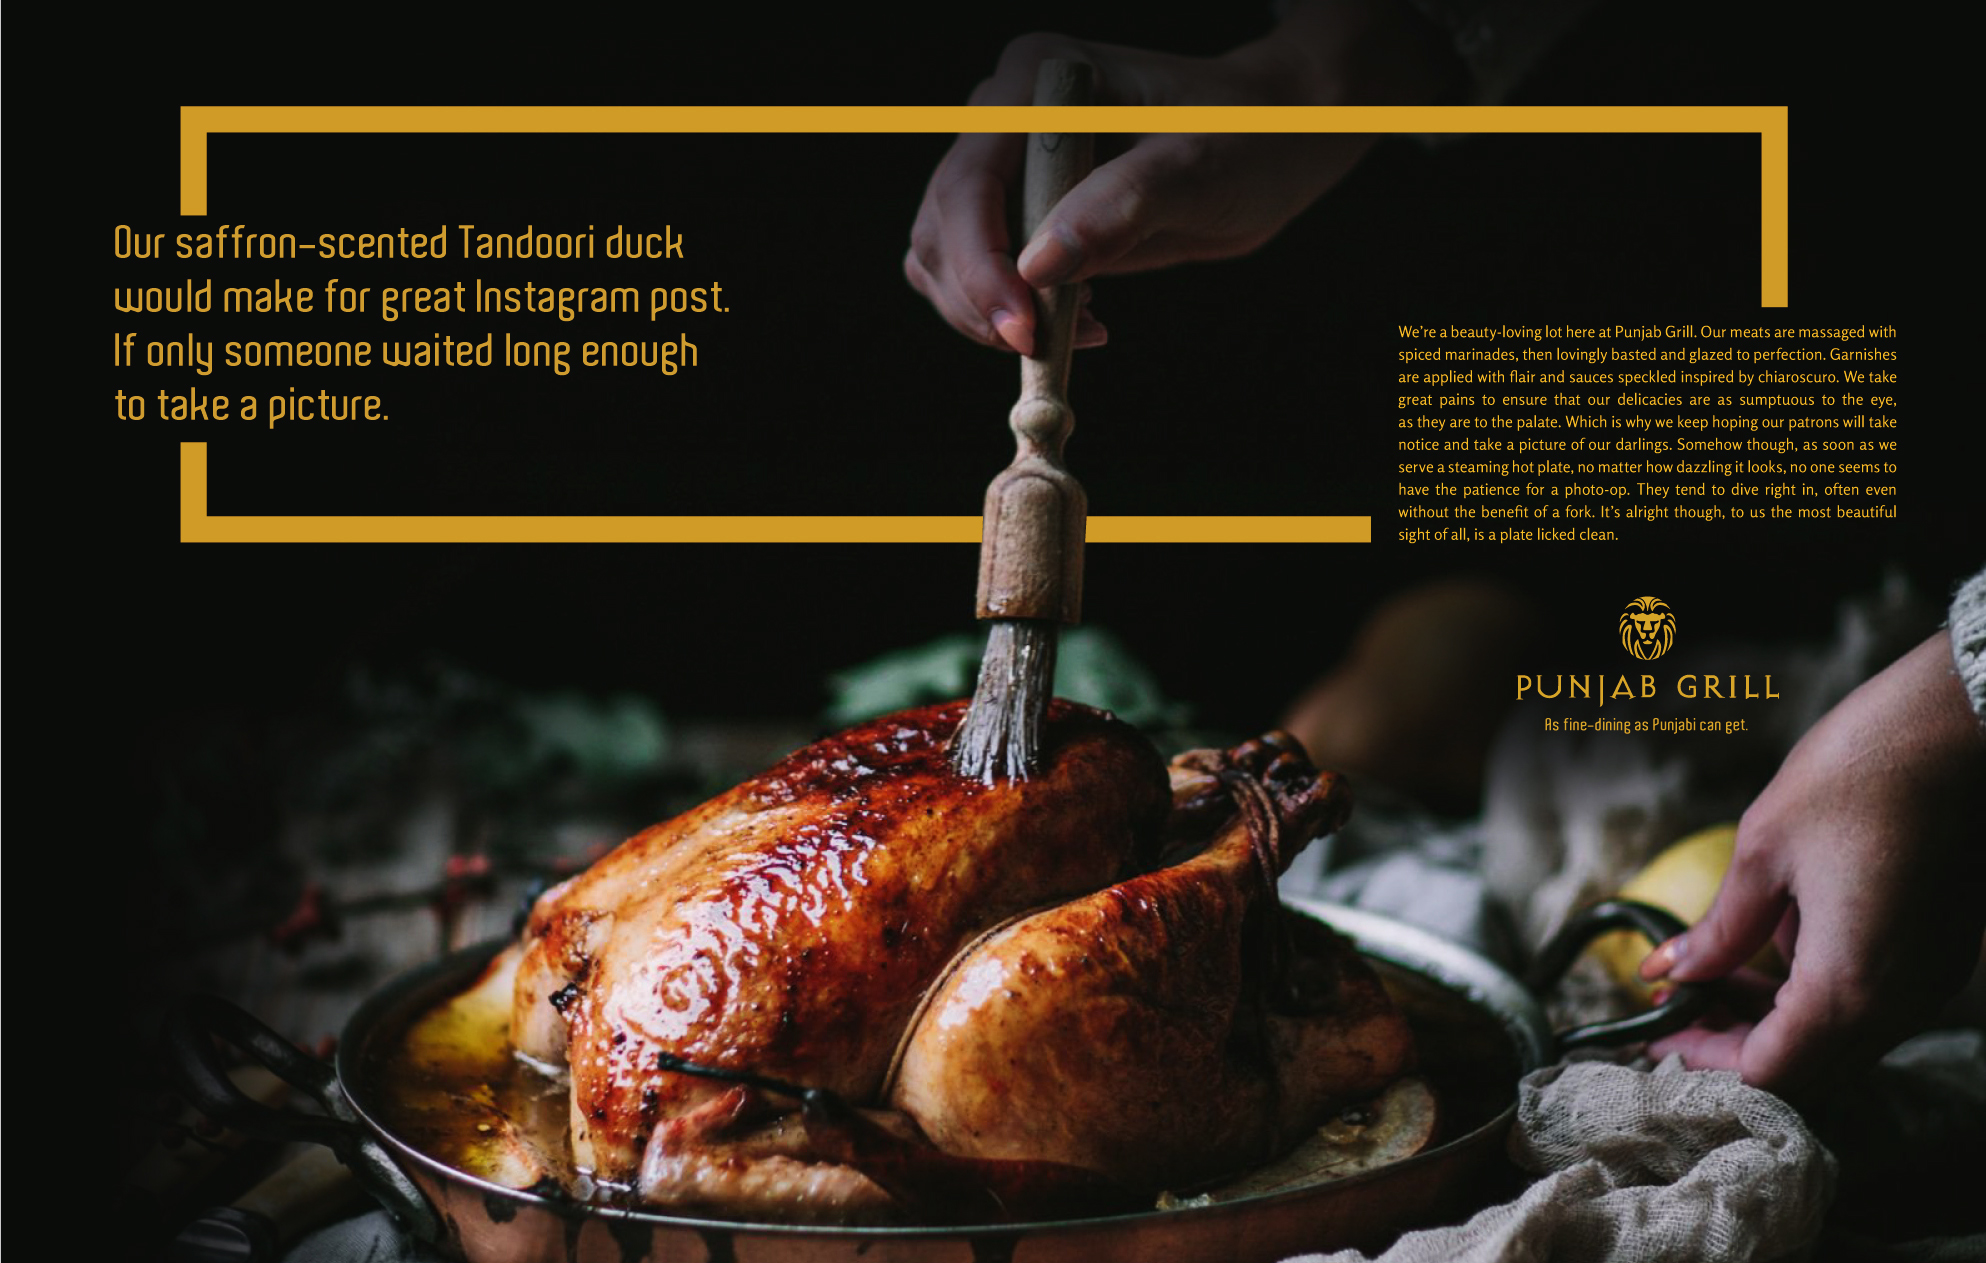 'As fine-dining as Punjabi can get' Campaign